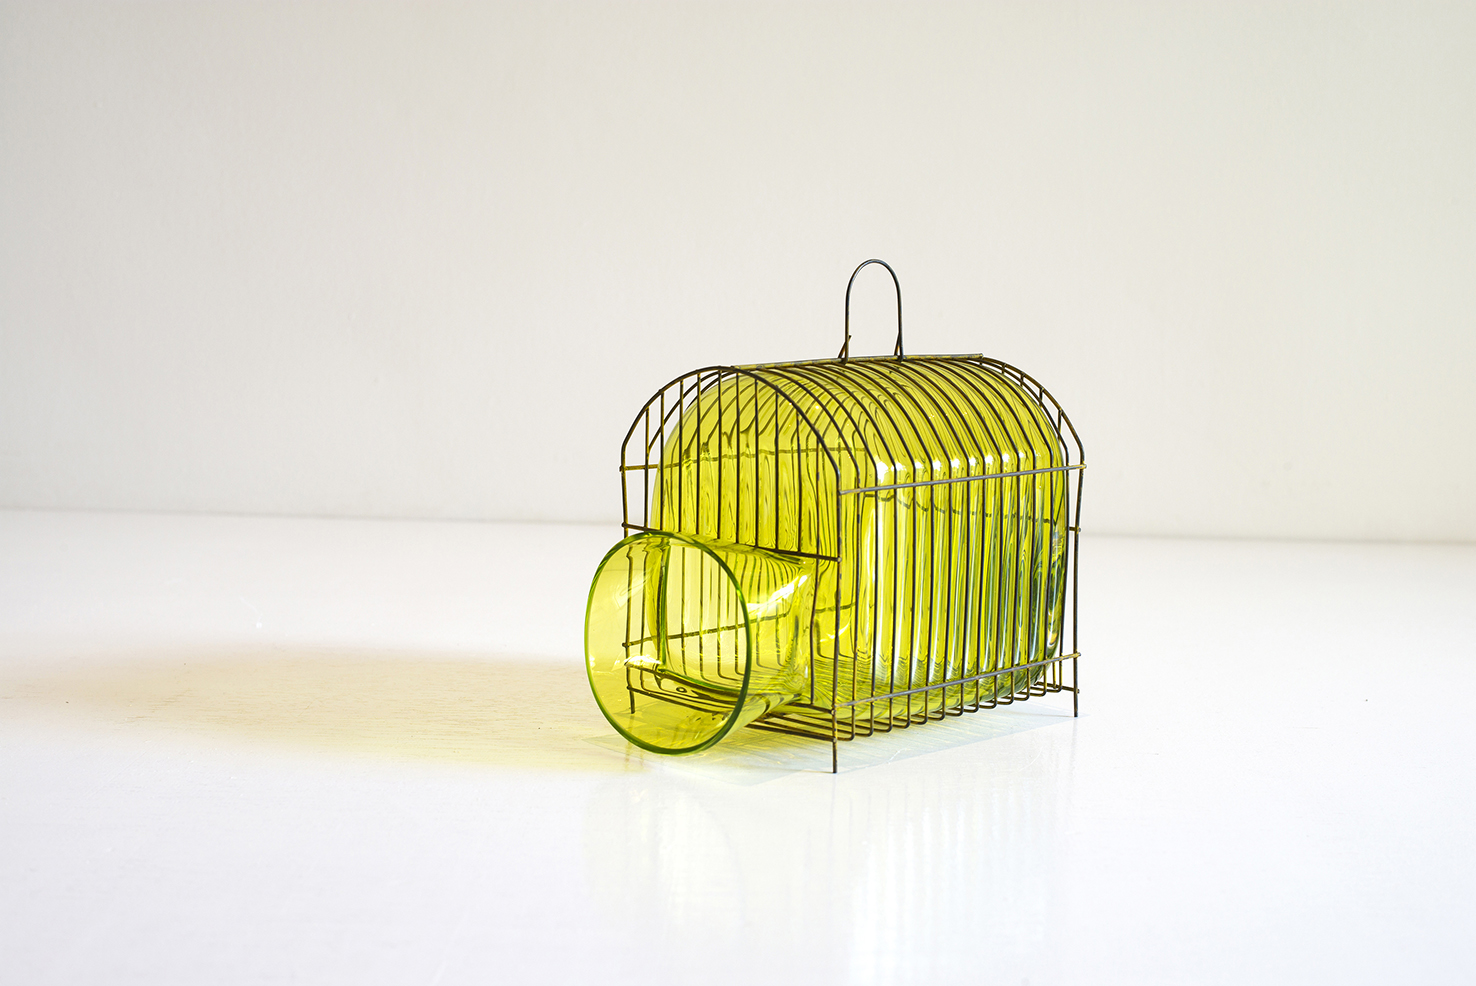 web22-Out_Cage_Yellow_Cage_small_photofelixfriedmann-Gala-Fernandez-MarionFriedmannGallery.jpg